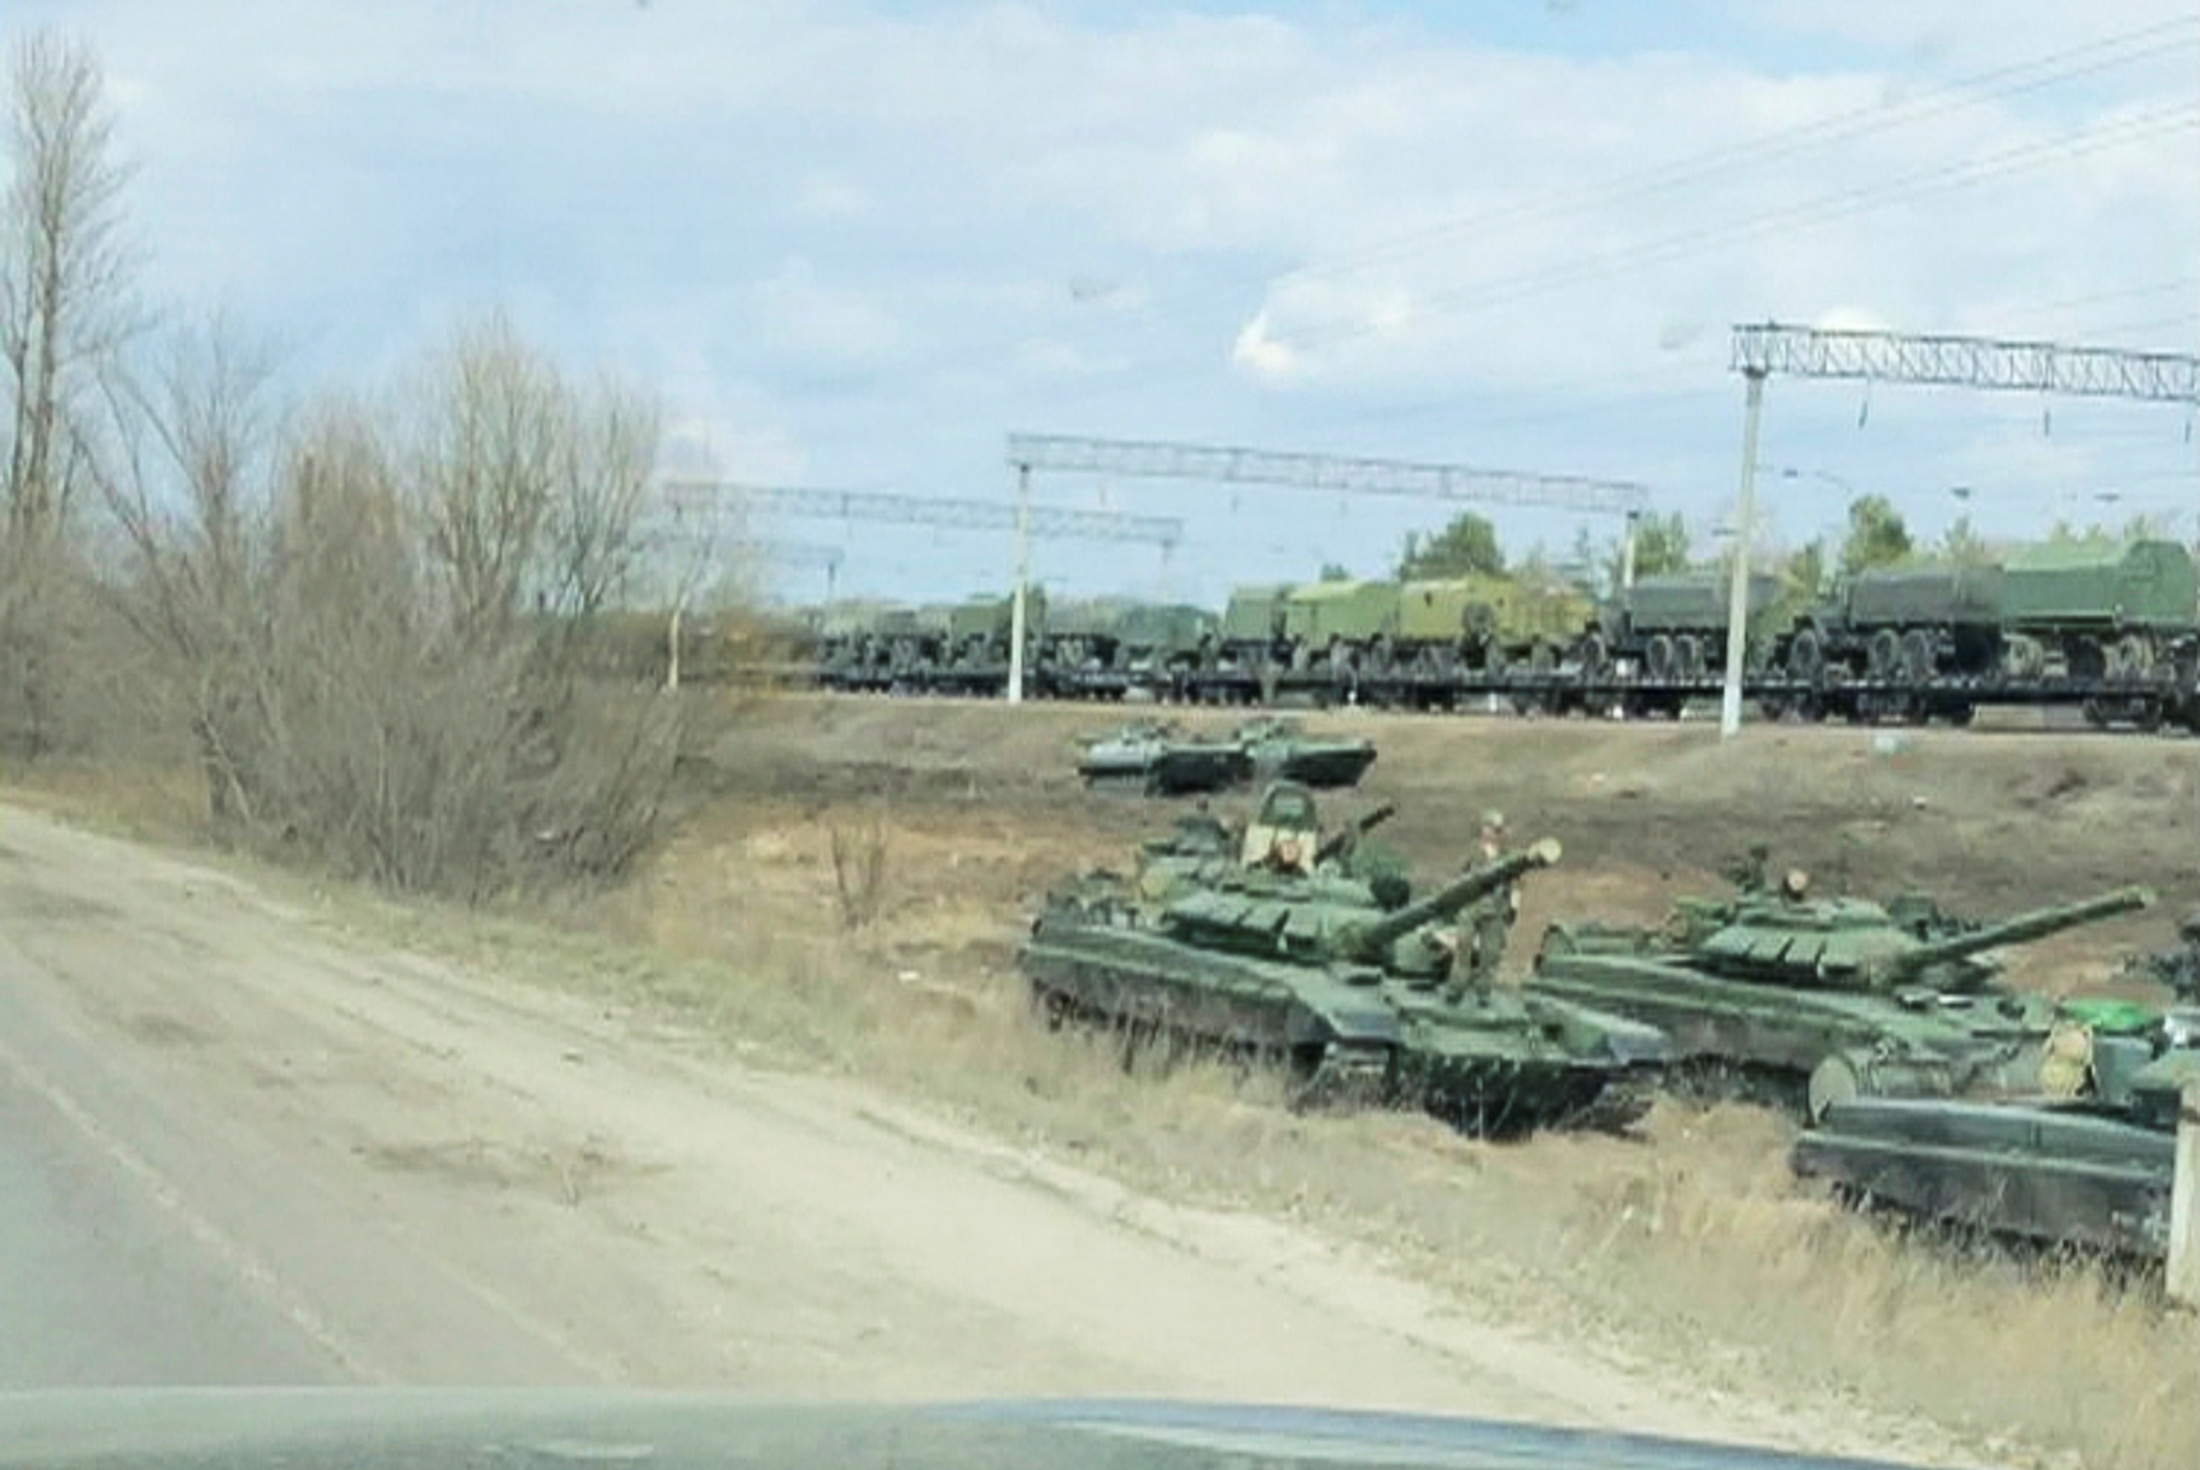 A still image from video shows tanks and military vehicles in Maslovka, Voronezh Region, Russia April 6, 2021. Video taken April 6, 2021. Video by REUTERS